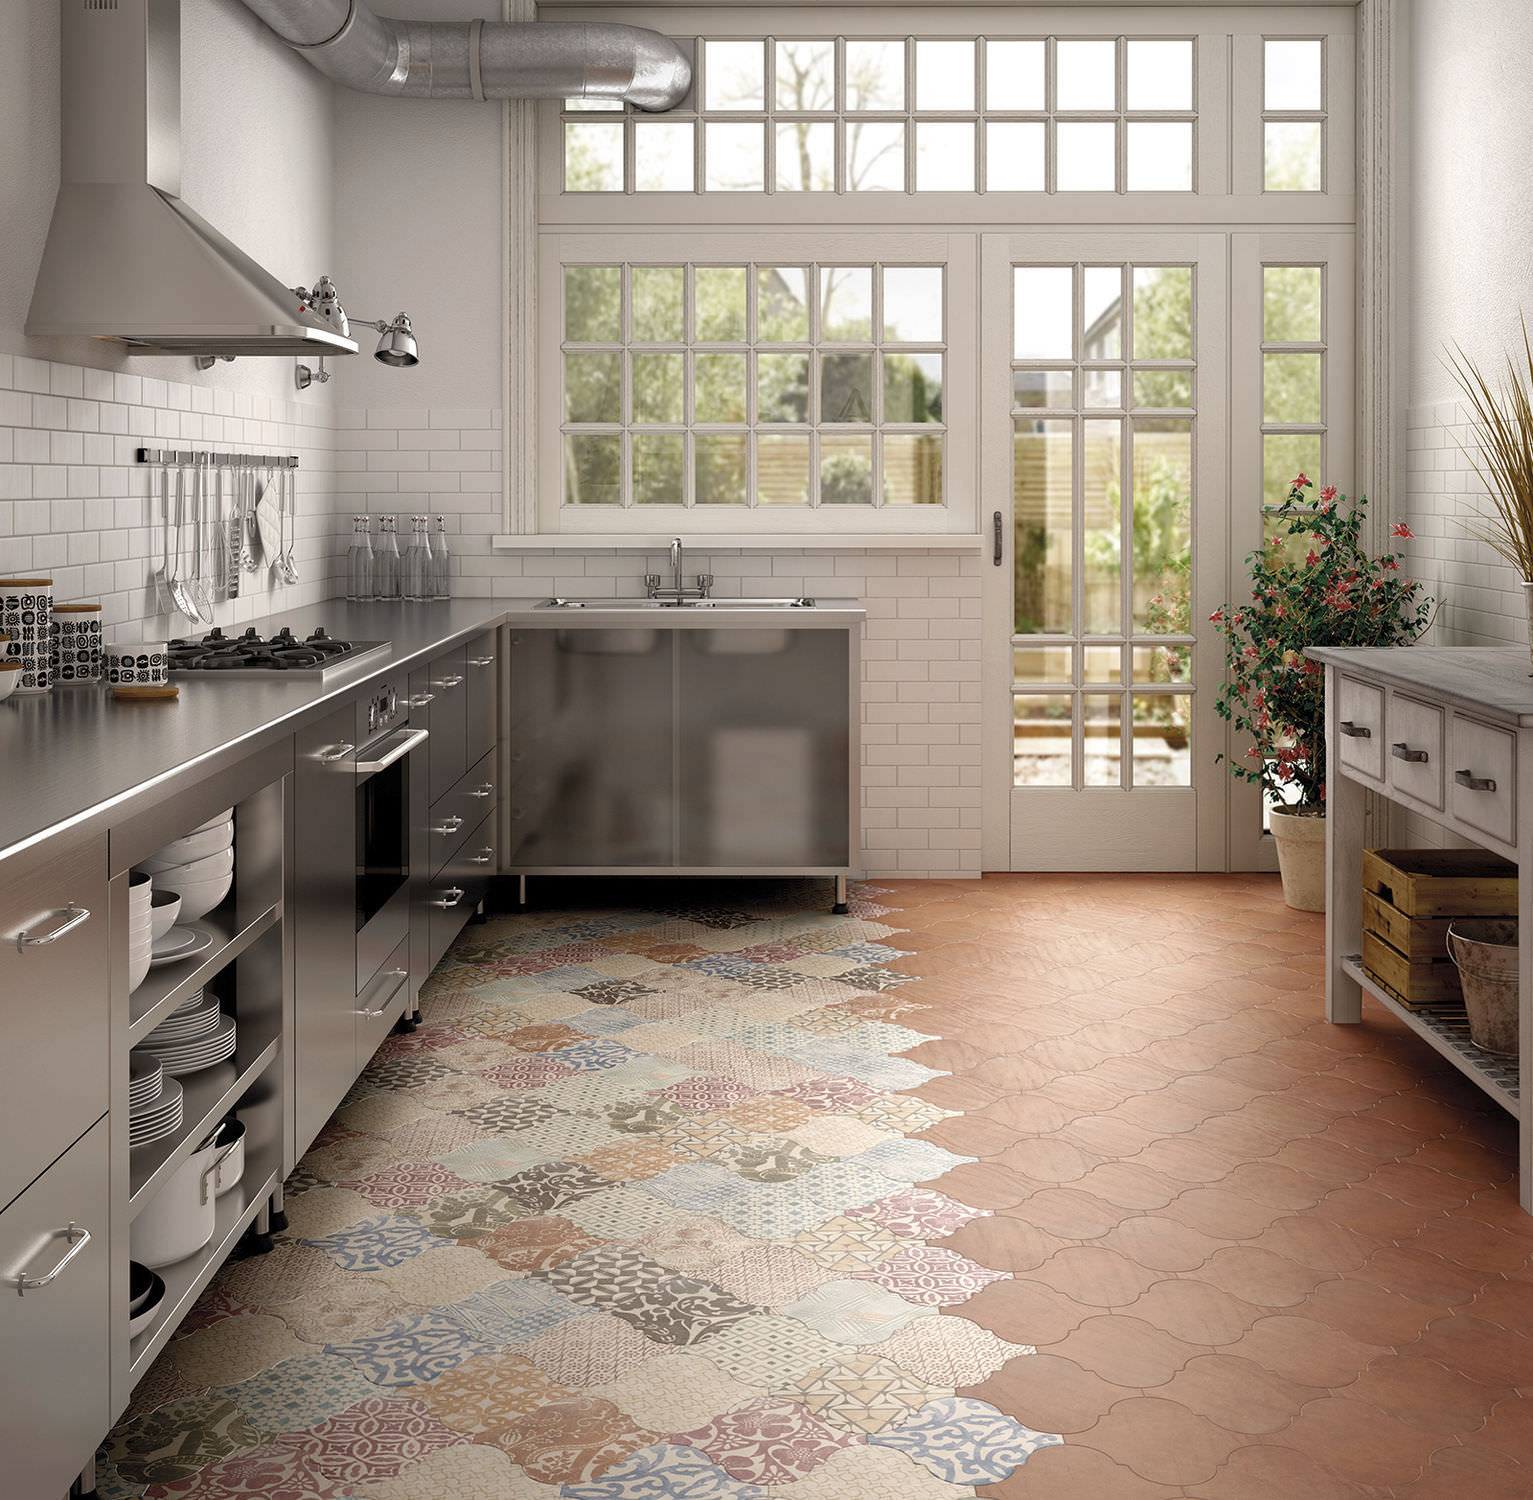 Terra Cotta Tile In Kitchen Kitchen Tile For Floors Terracotta Matte Curvytile Cotto